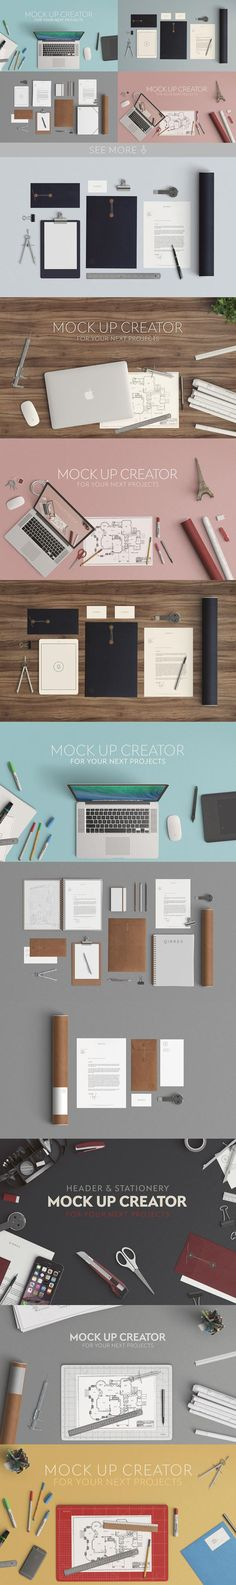 The perfect mock up creator for your next design and identity projects.